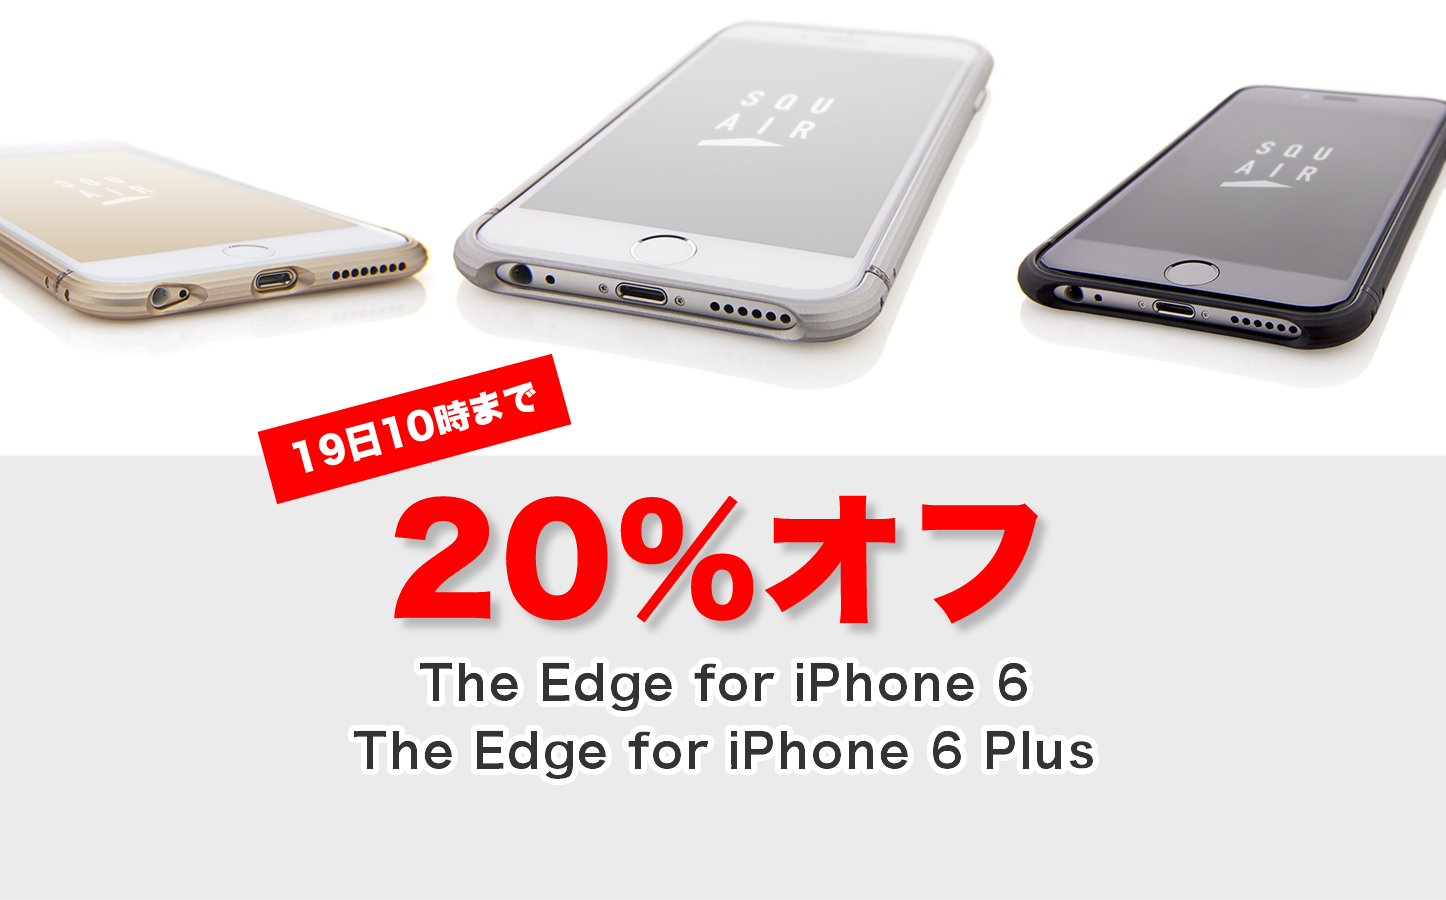 The Edge Sale